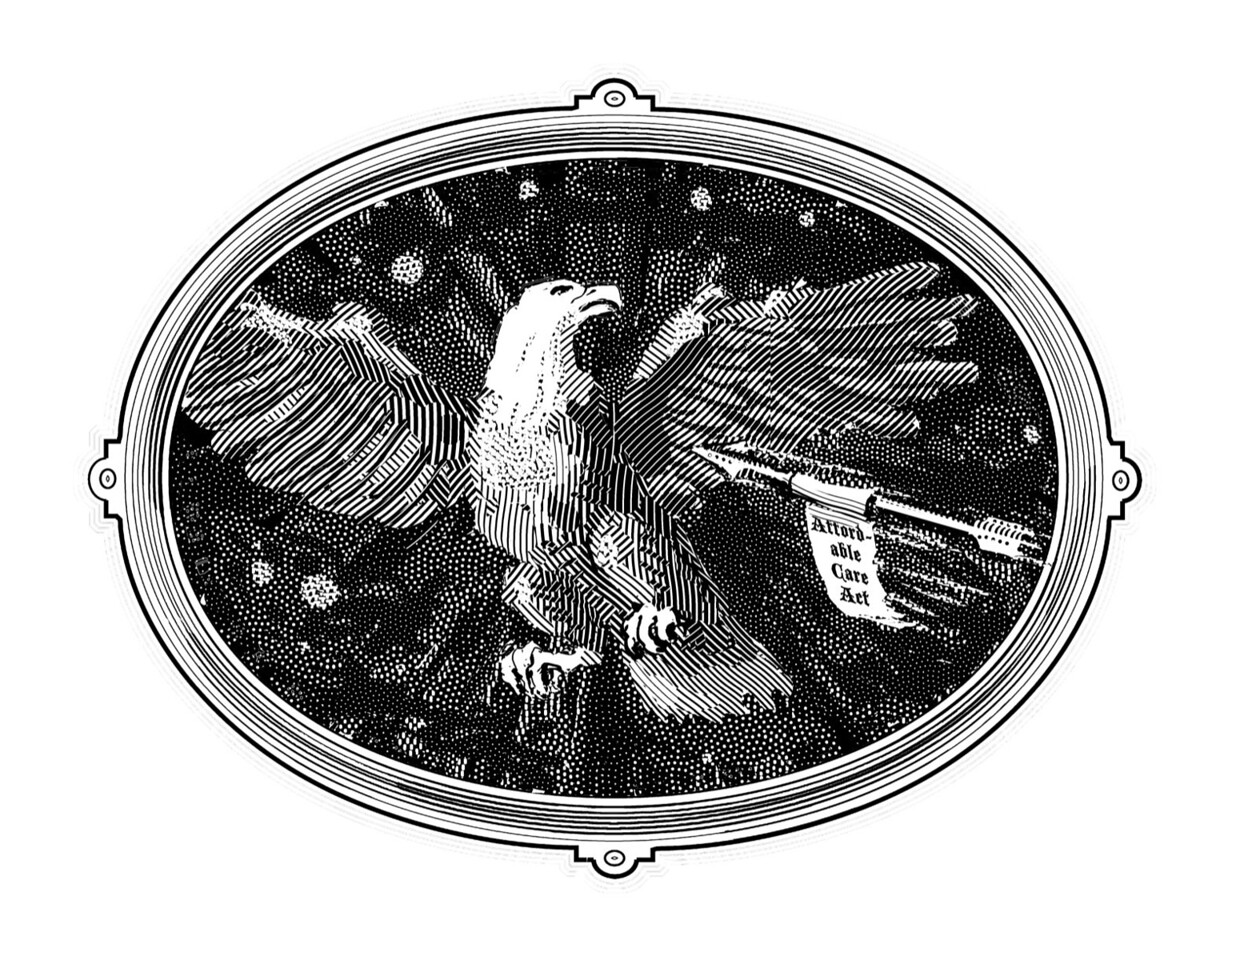 Illustration for the Summer 2013 issue of the Claremont Review of Books